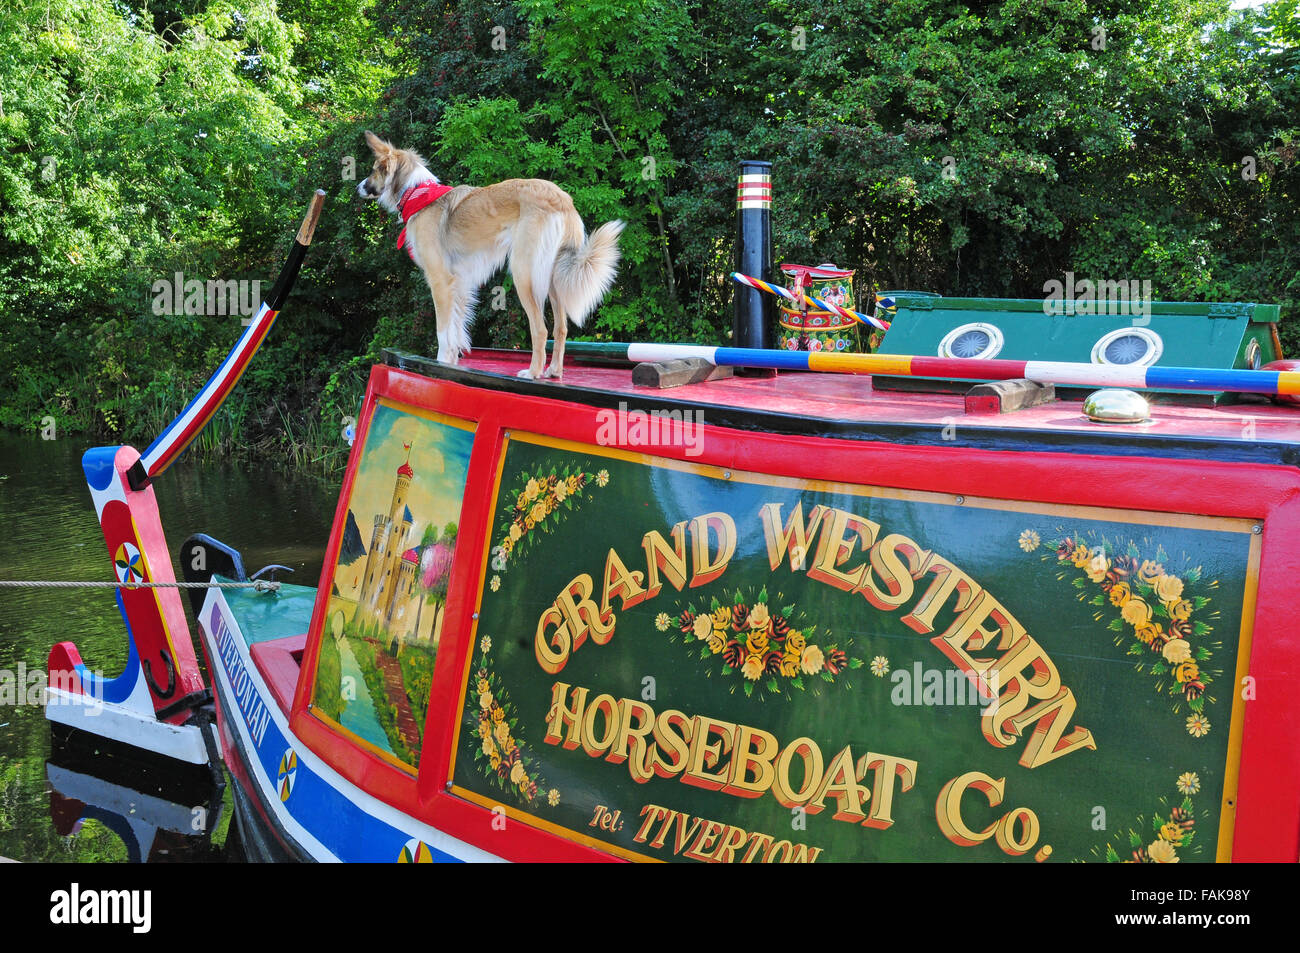 Dog with red spotted neckerchief on the roof of a barge, Grand Western Canal, Devon. - Stock Image